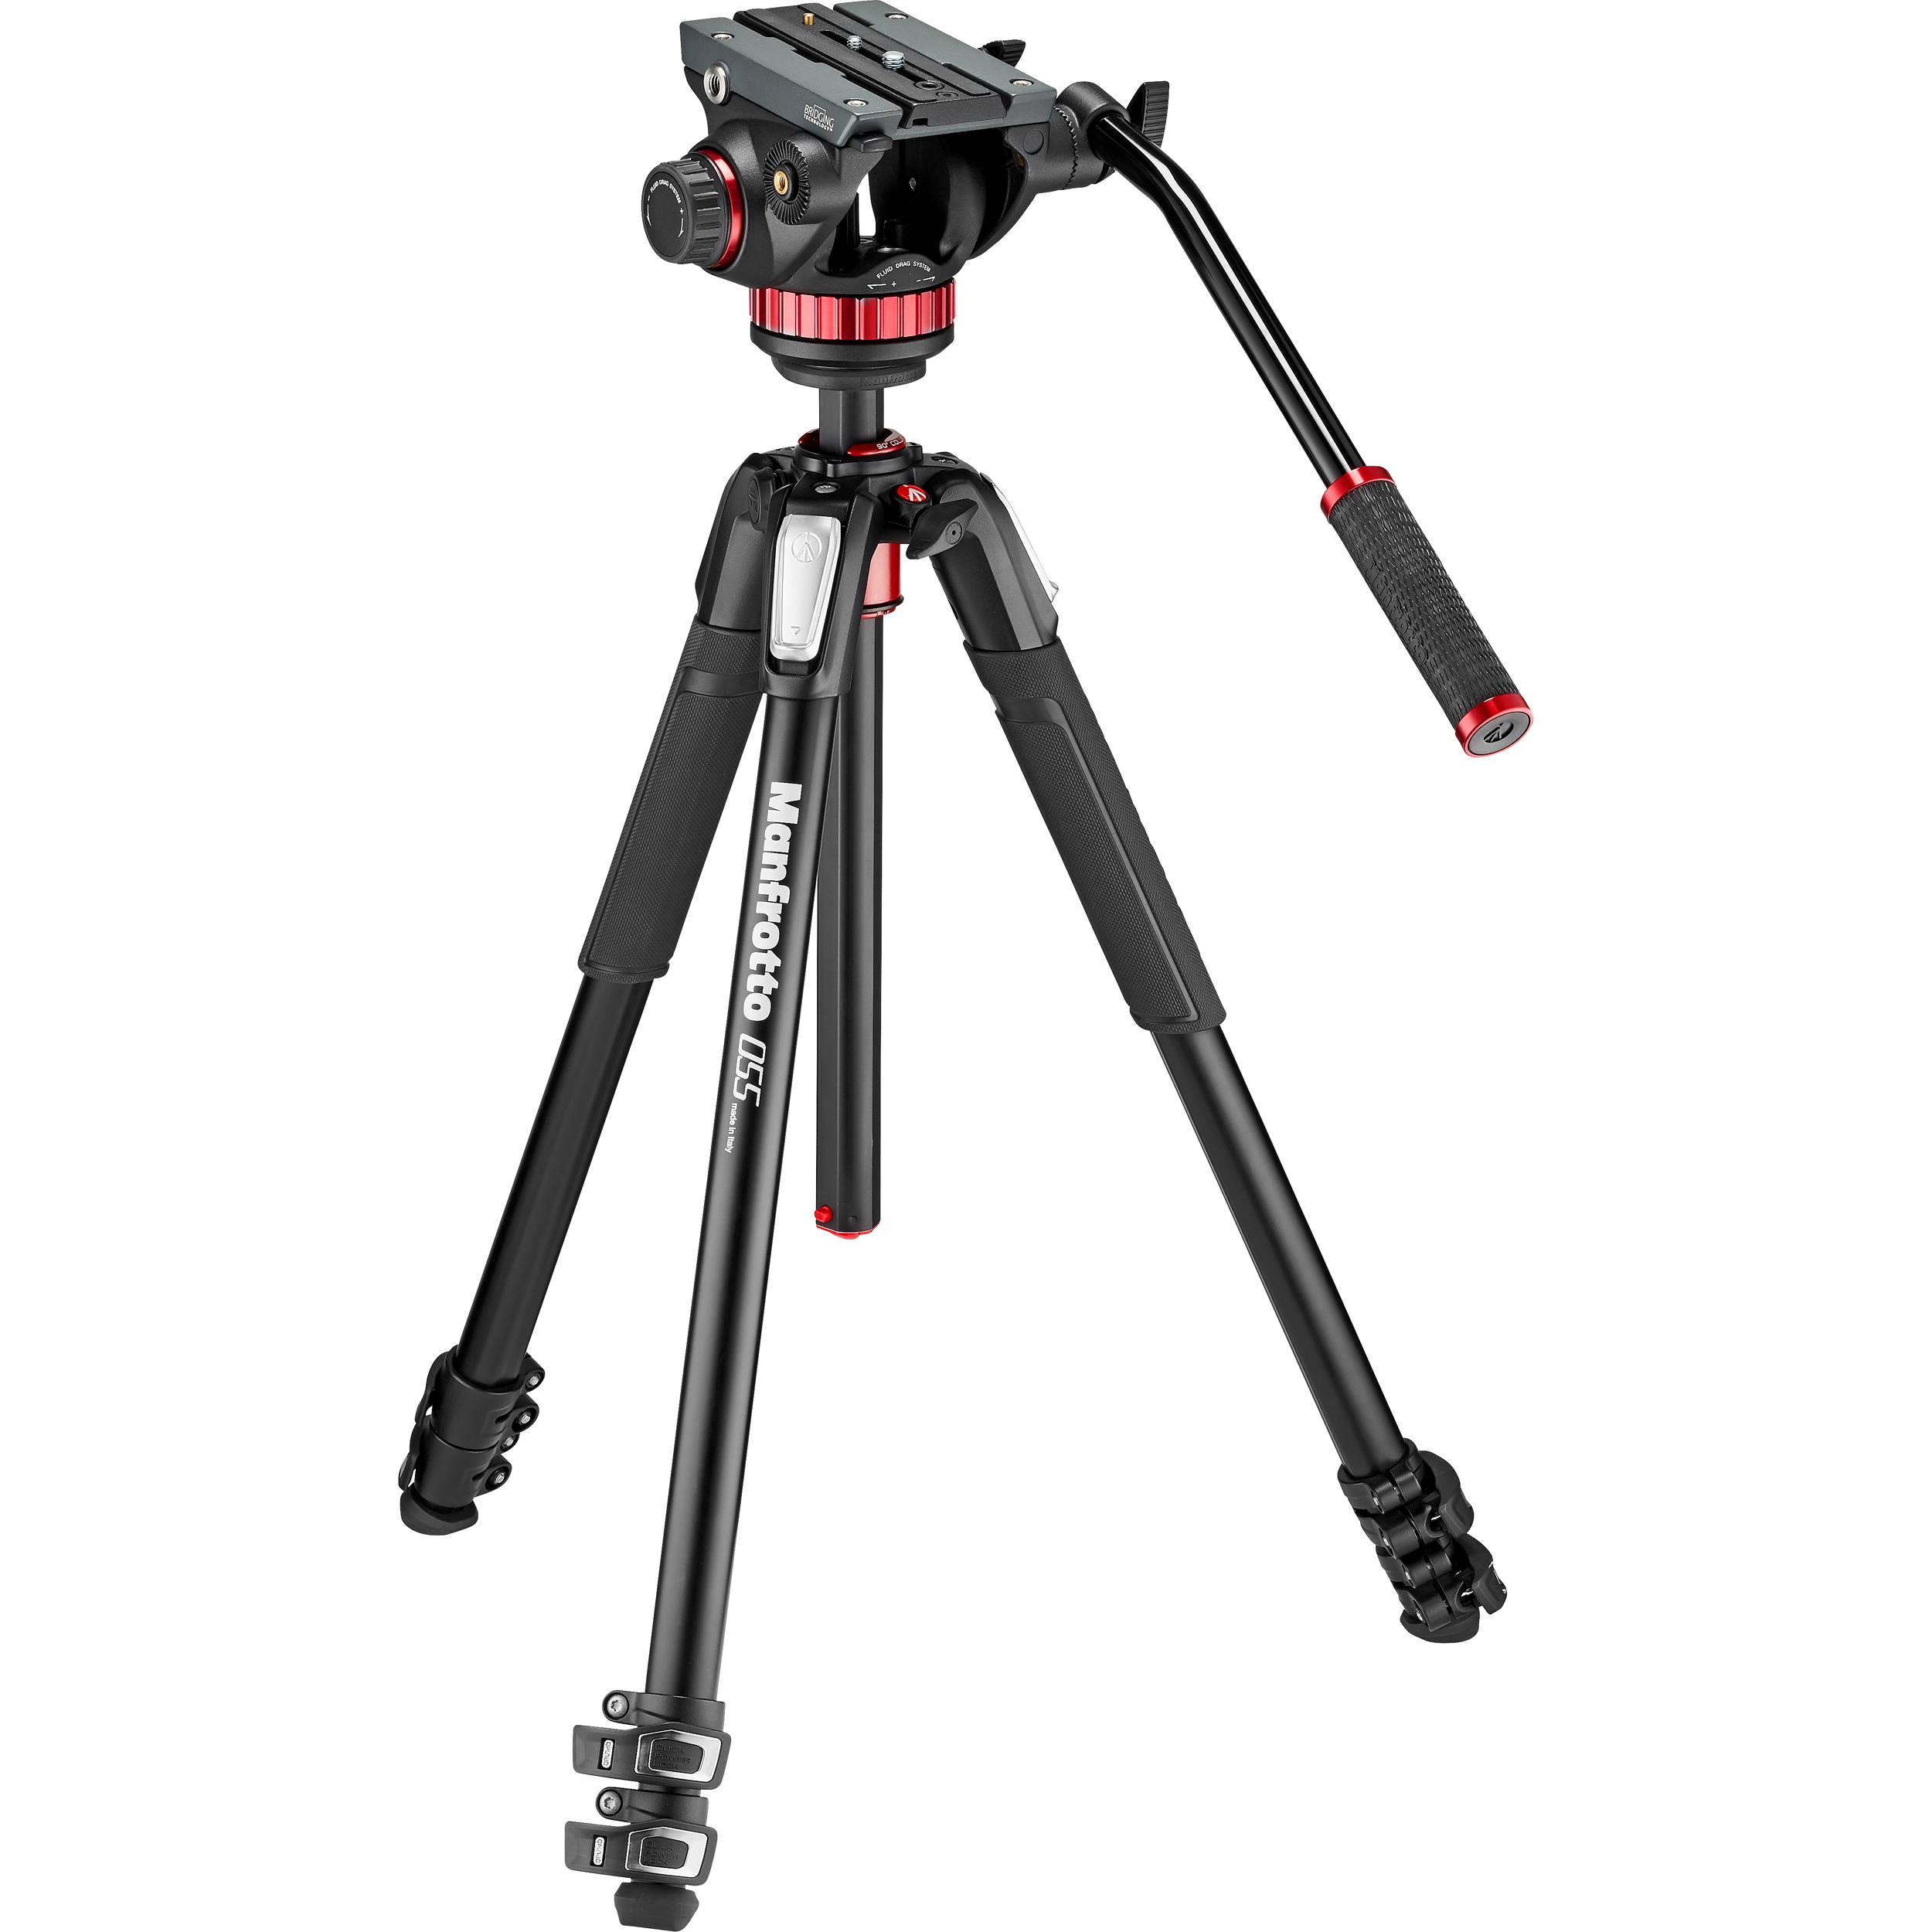 Image result for manfrotto tripod